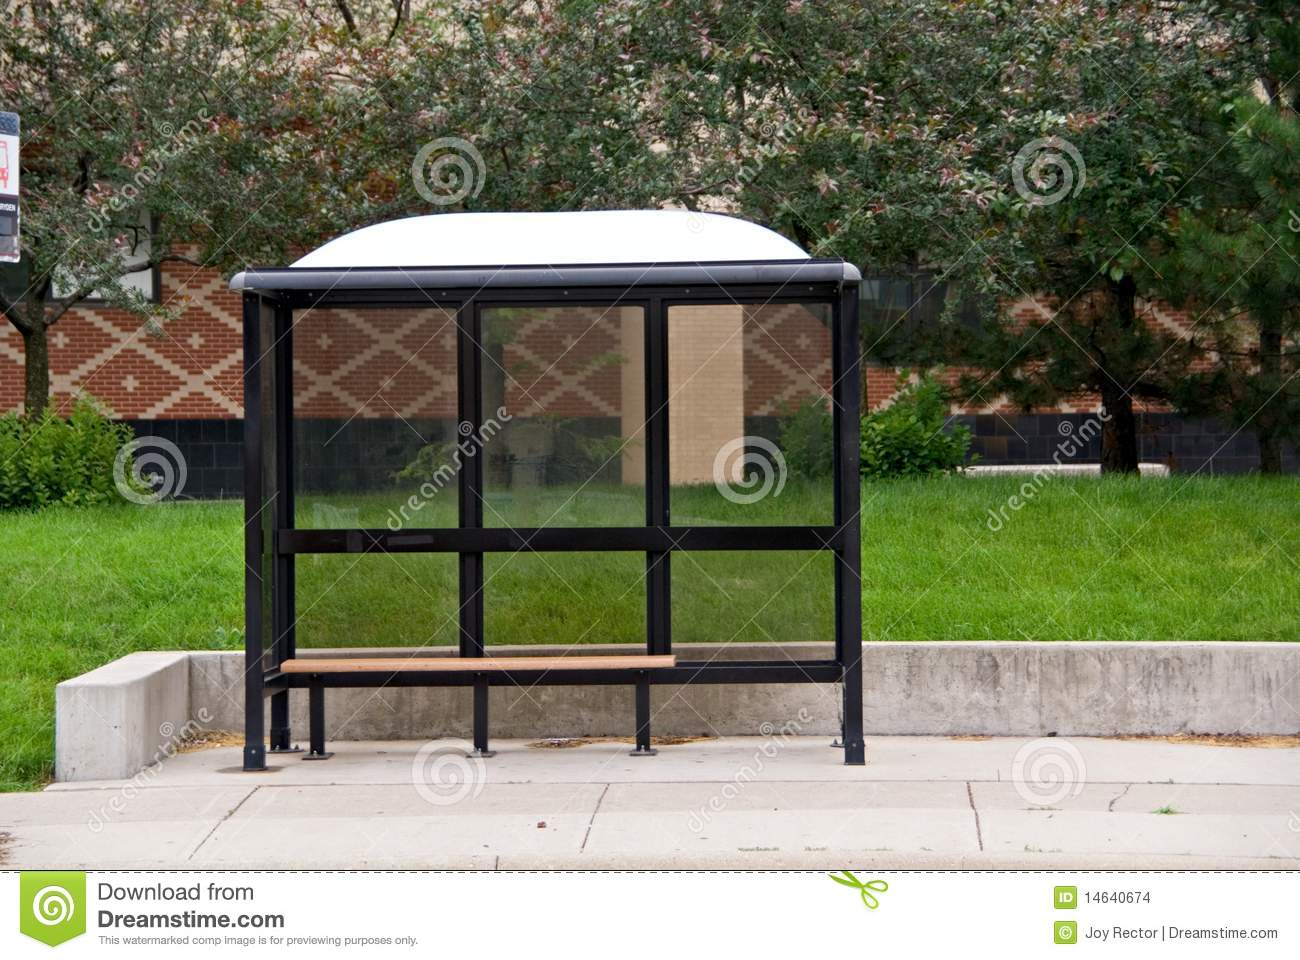 Bus Stop Bench Stock Photo Image Of Green Cement